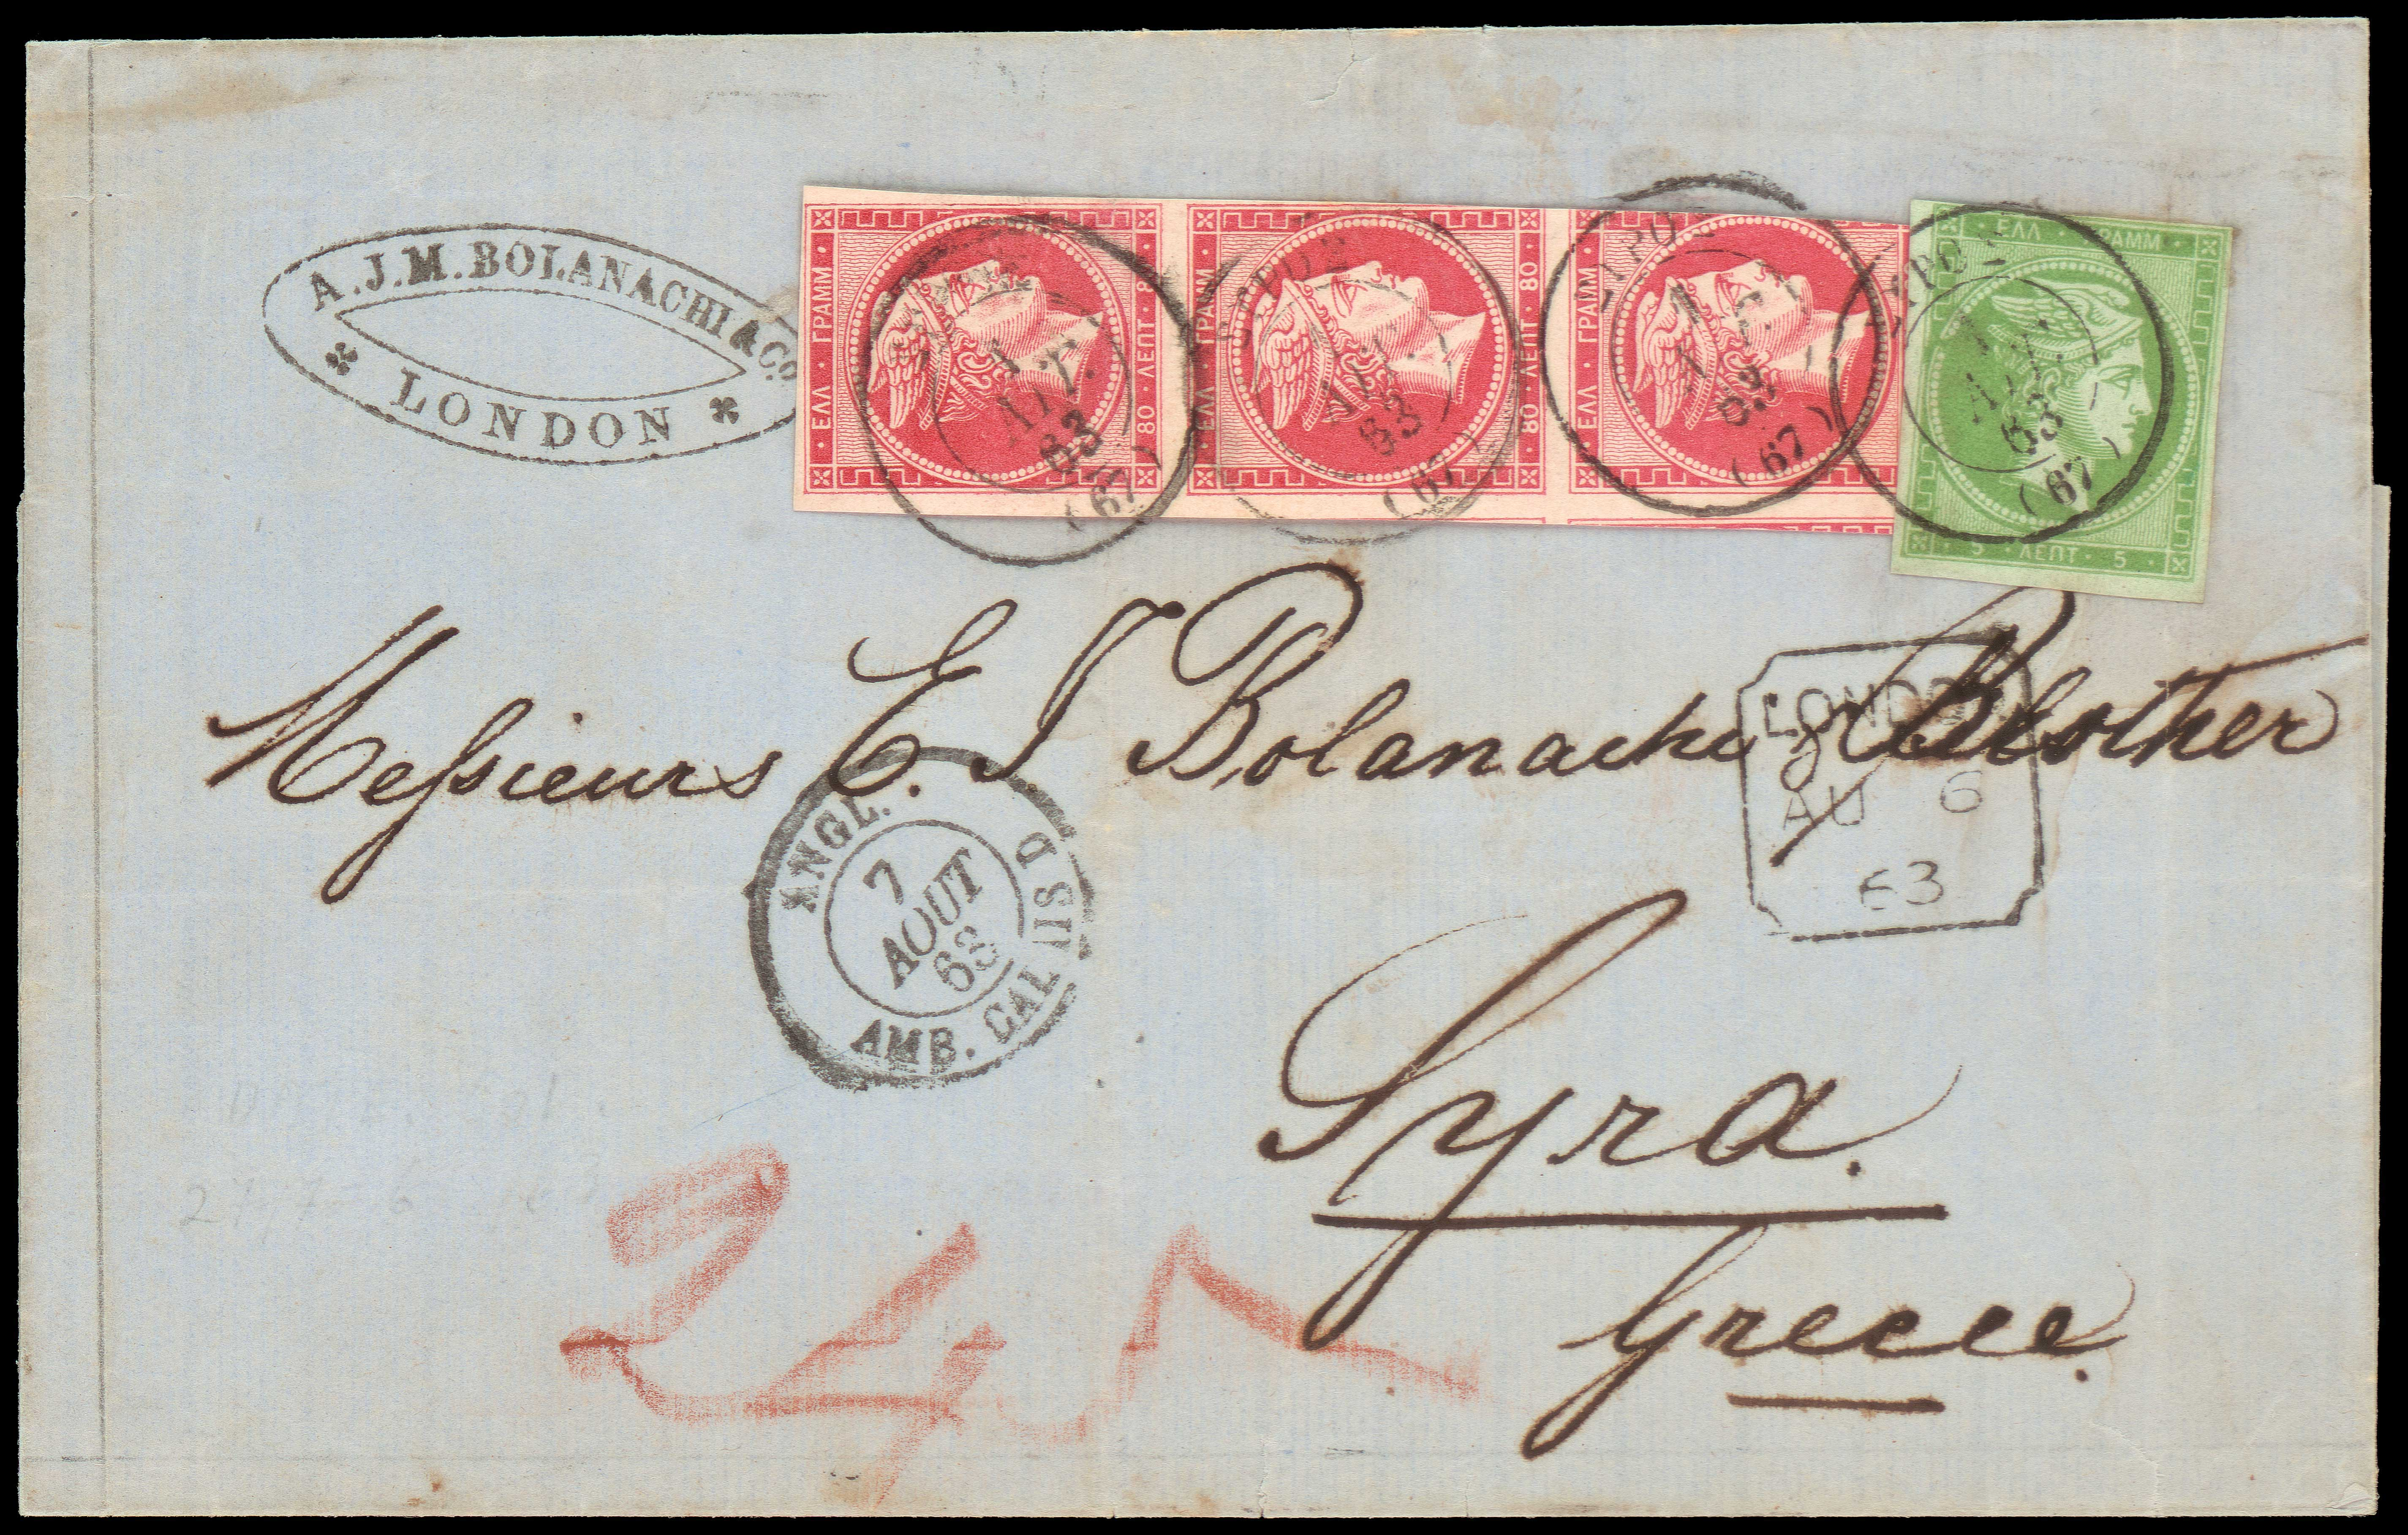 Lot 137 - -  LARGE HERMES HEAD 1862/67 consecutive athens printings -  A. Karamitsos Public & Live Internet Auction 666 Large Hermes Heads Exceptional Stamps from Great Collections